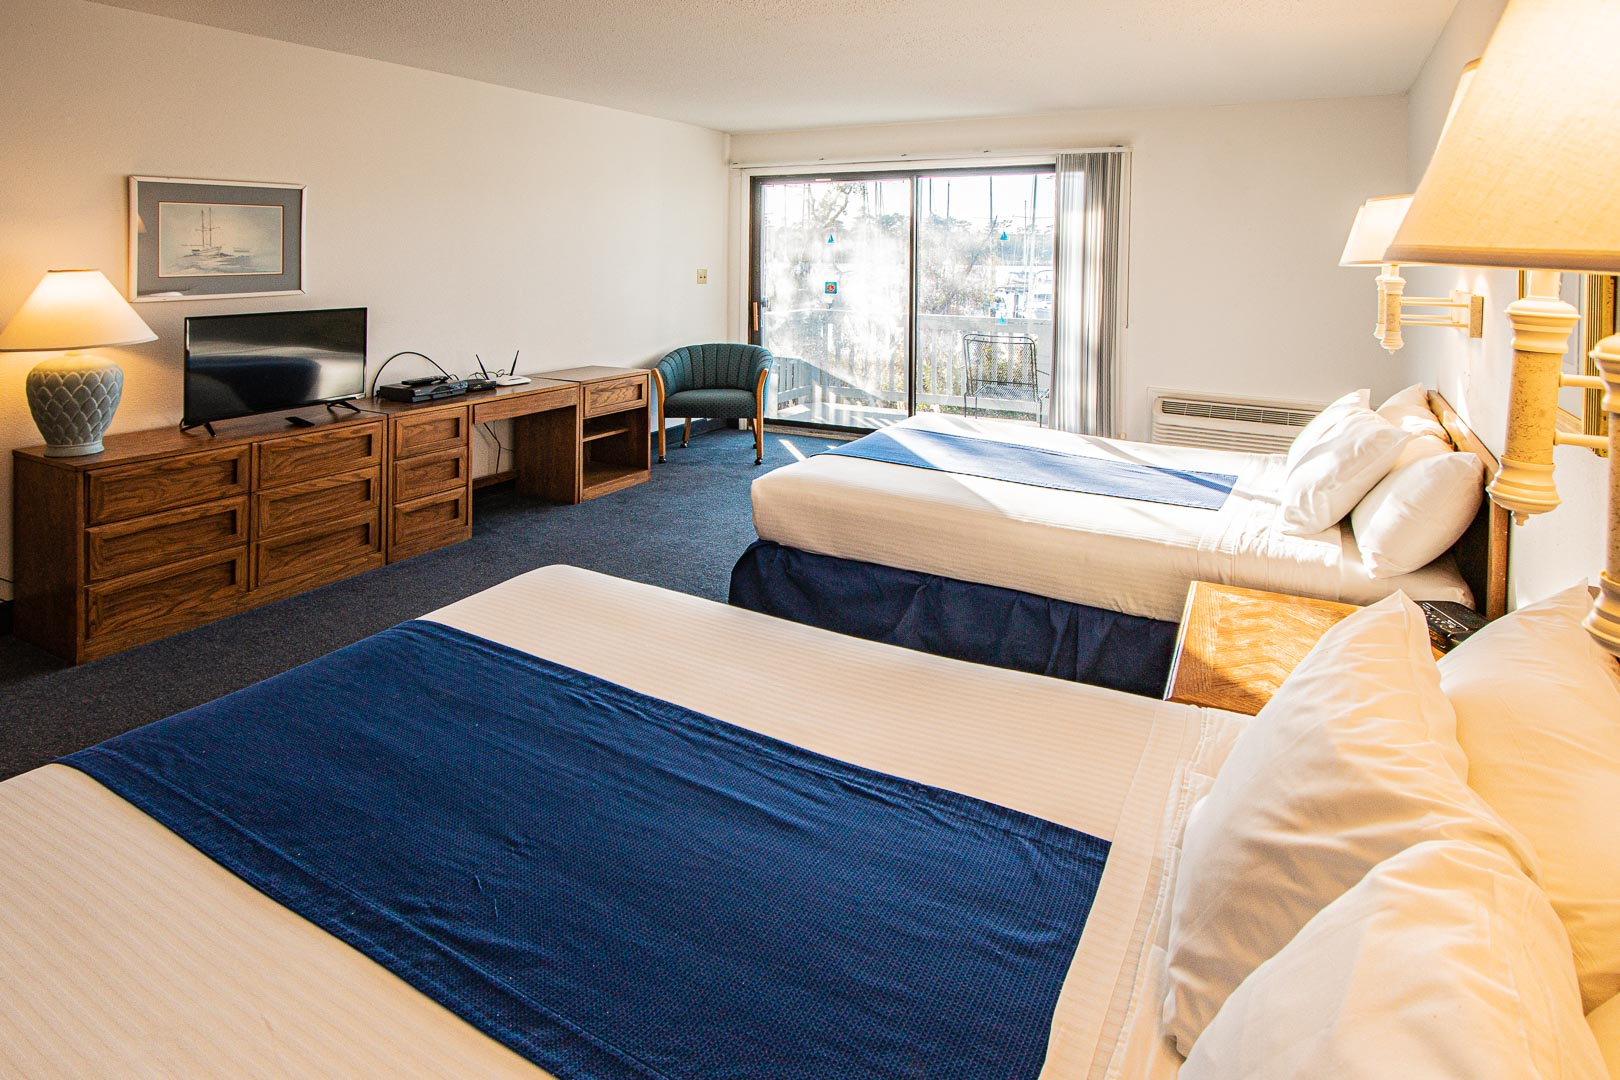 A spacious bedroom with double beds at VRI's Harbourside II in New Bern, North Carolina.